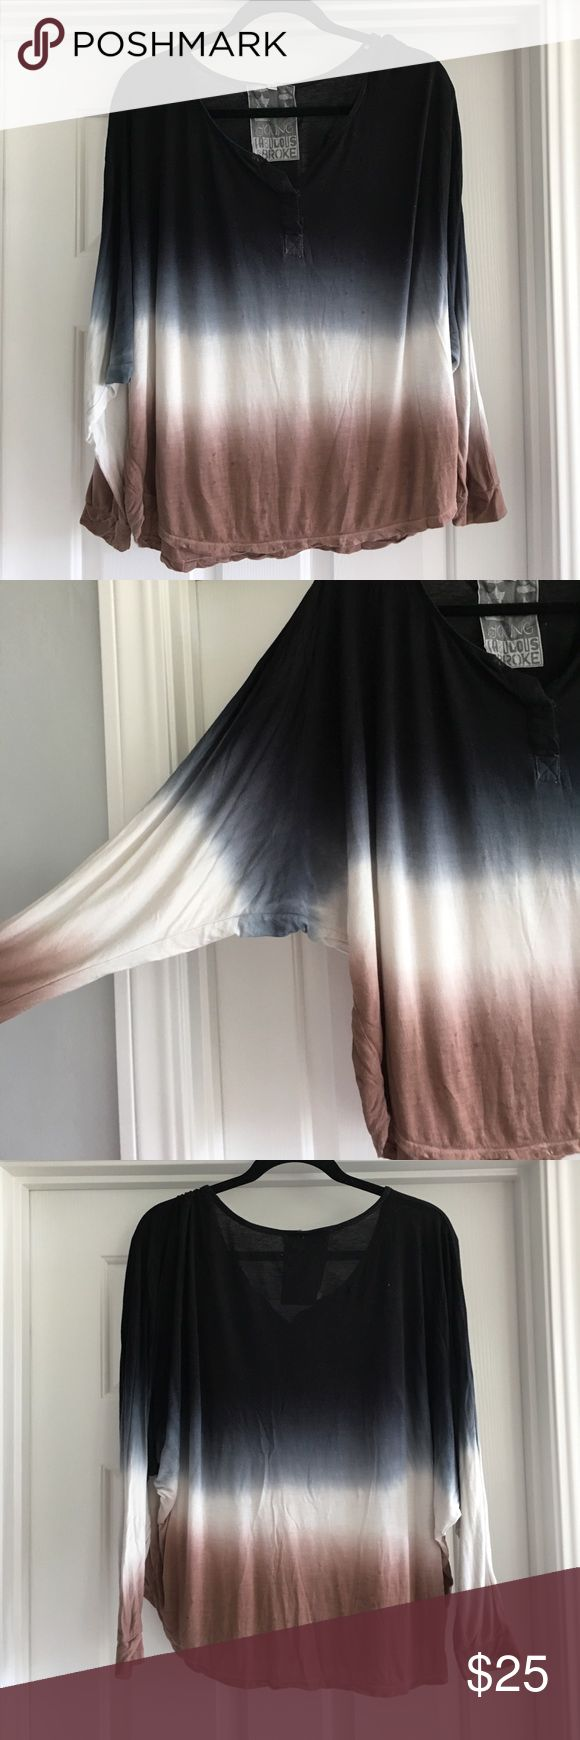 Young, fabulous and broke ombré top Young, fabulous and broke ombré top with split neck and dolman sleeves. Size large, fits more like a medium Young Fabulous & Broke Tops Blouses